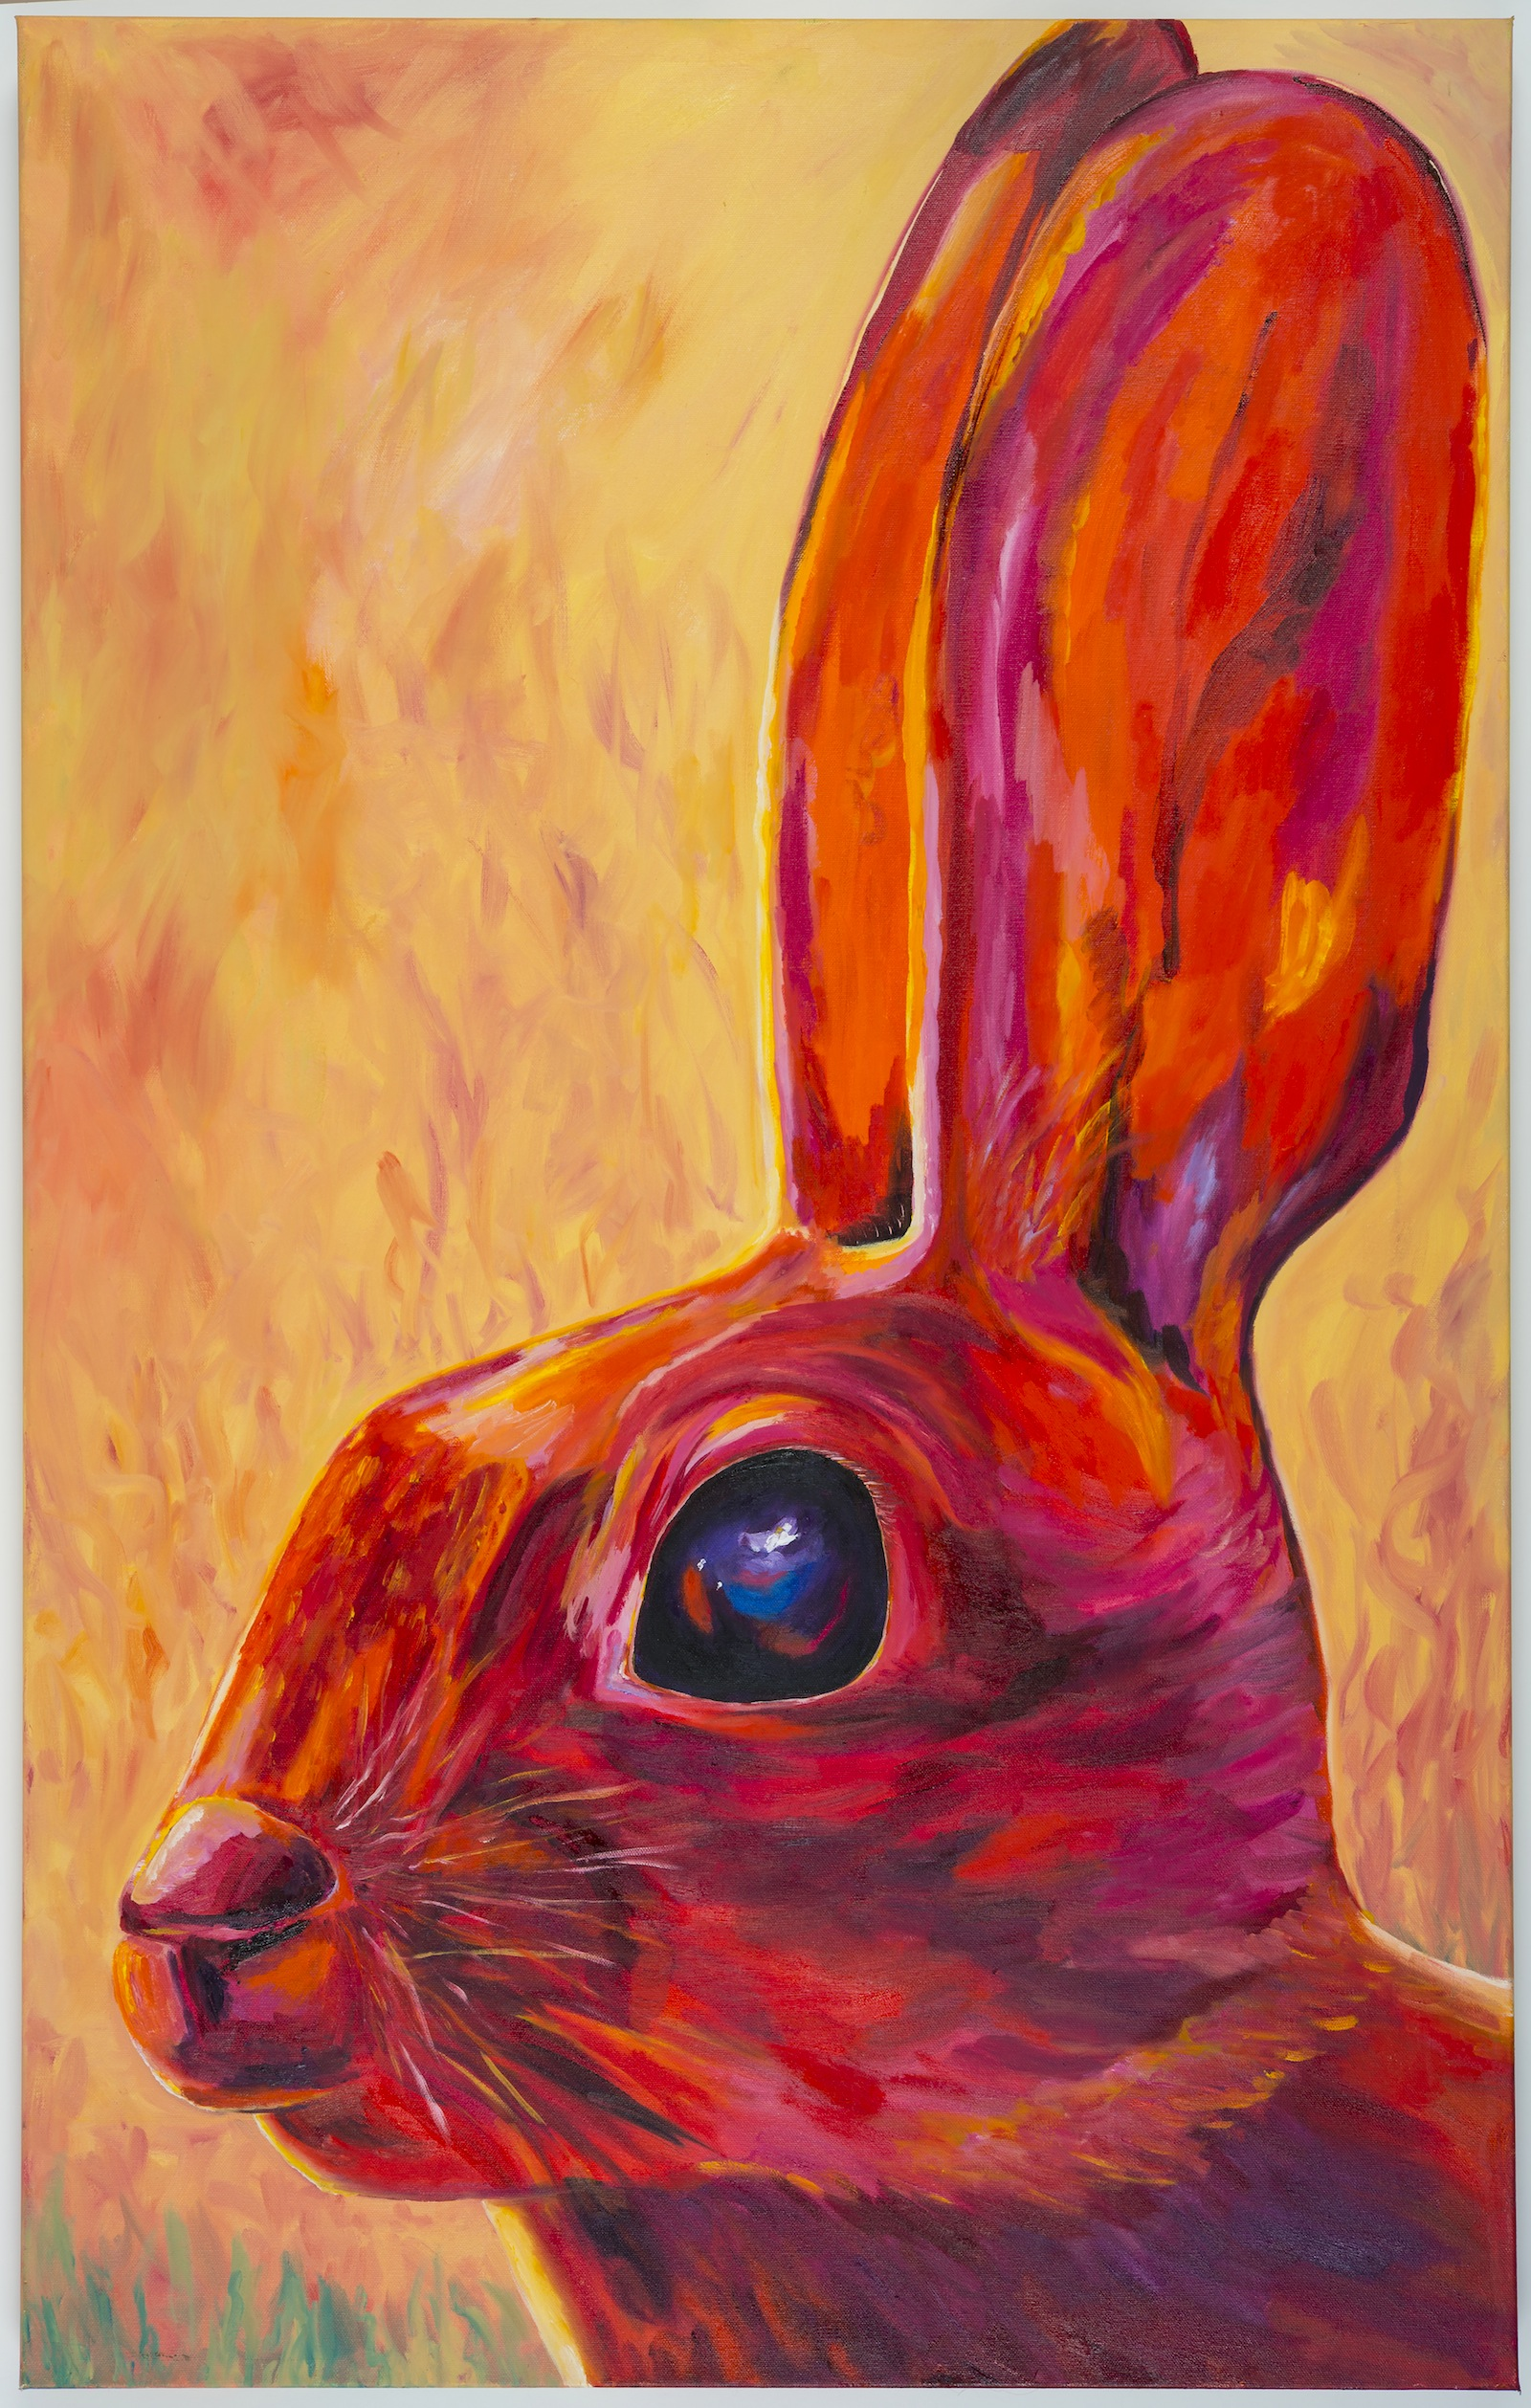 Rabbit copy 4.jpg